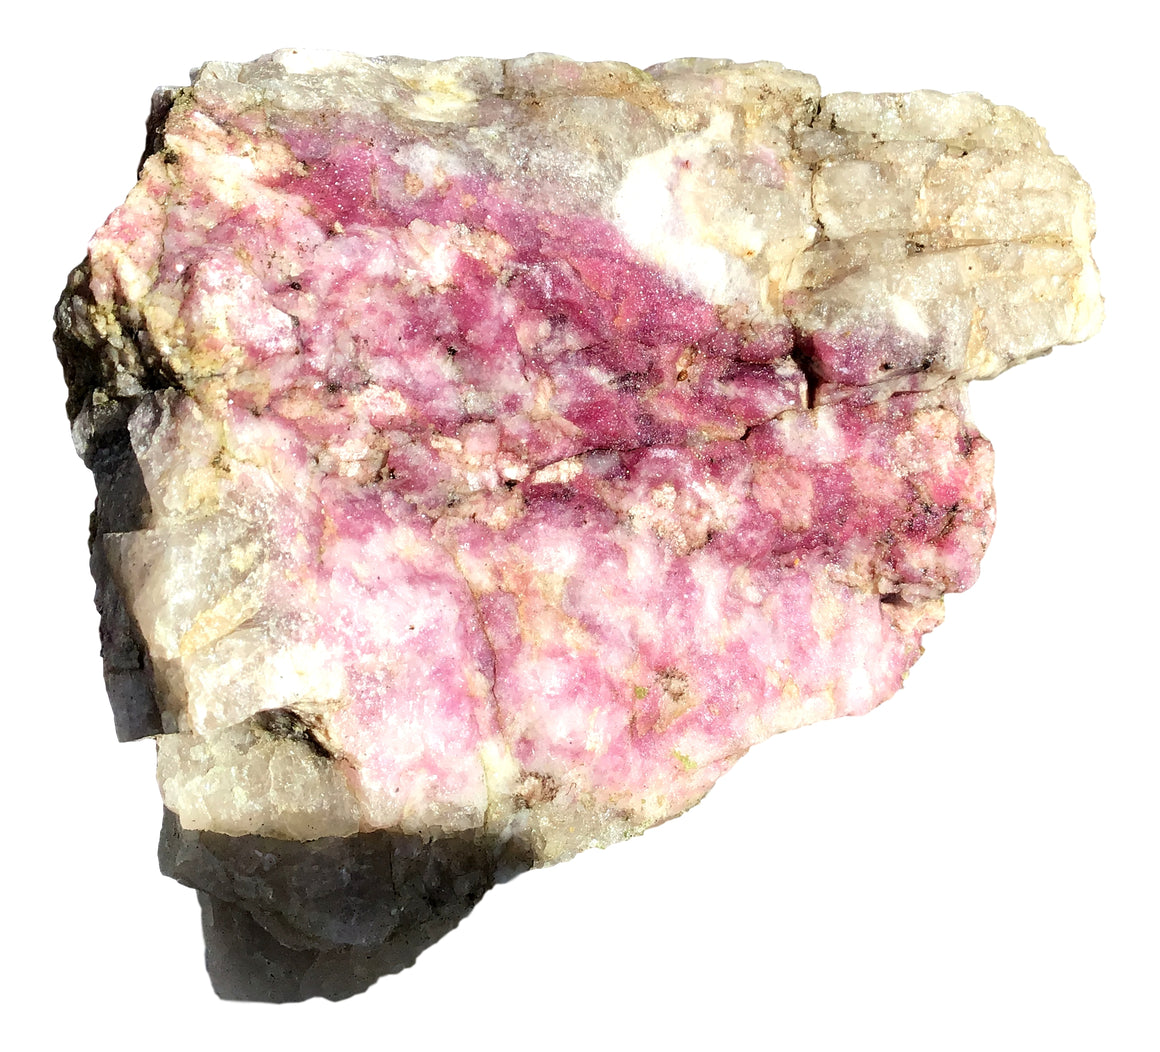 "Watermelon Tourmaline Crystal Mineral Display Specimen #14 - 8""x6""x5"" - dinosaursrocksuperstore"